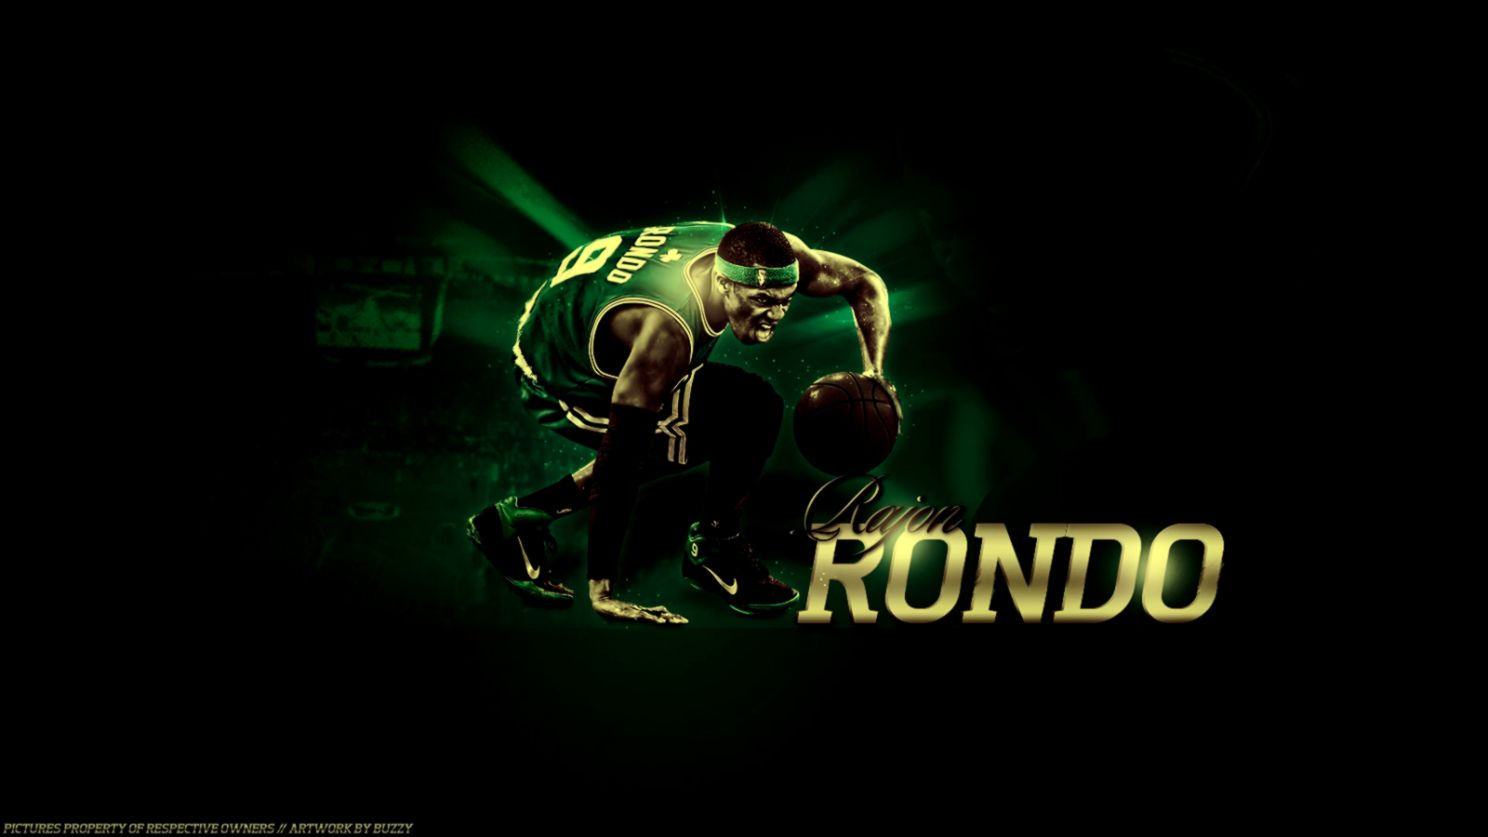 Rajon Rondo Wallpapers  Basketball Wallpapers at